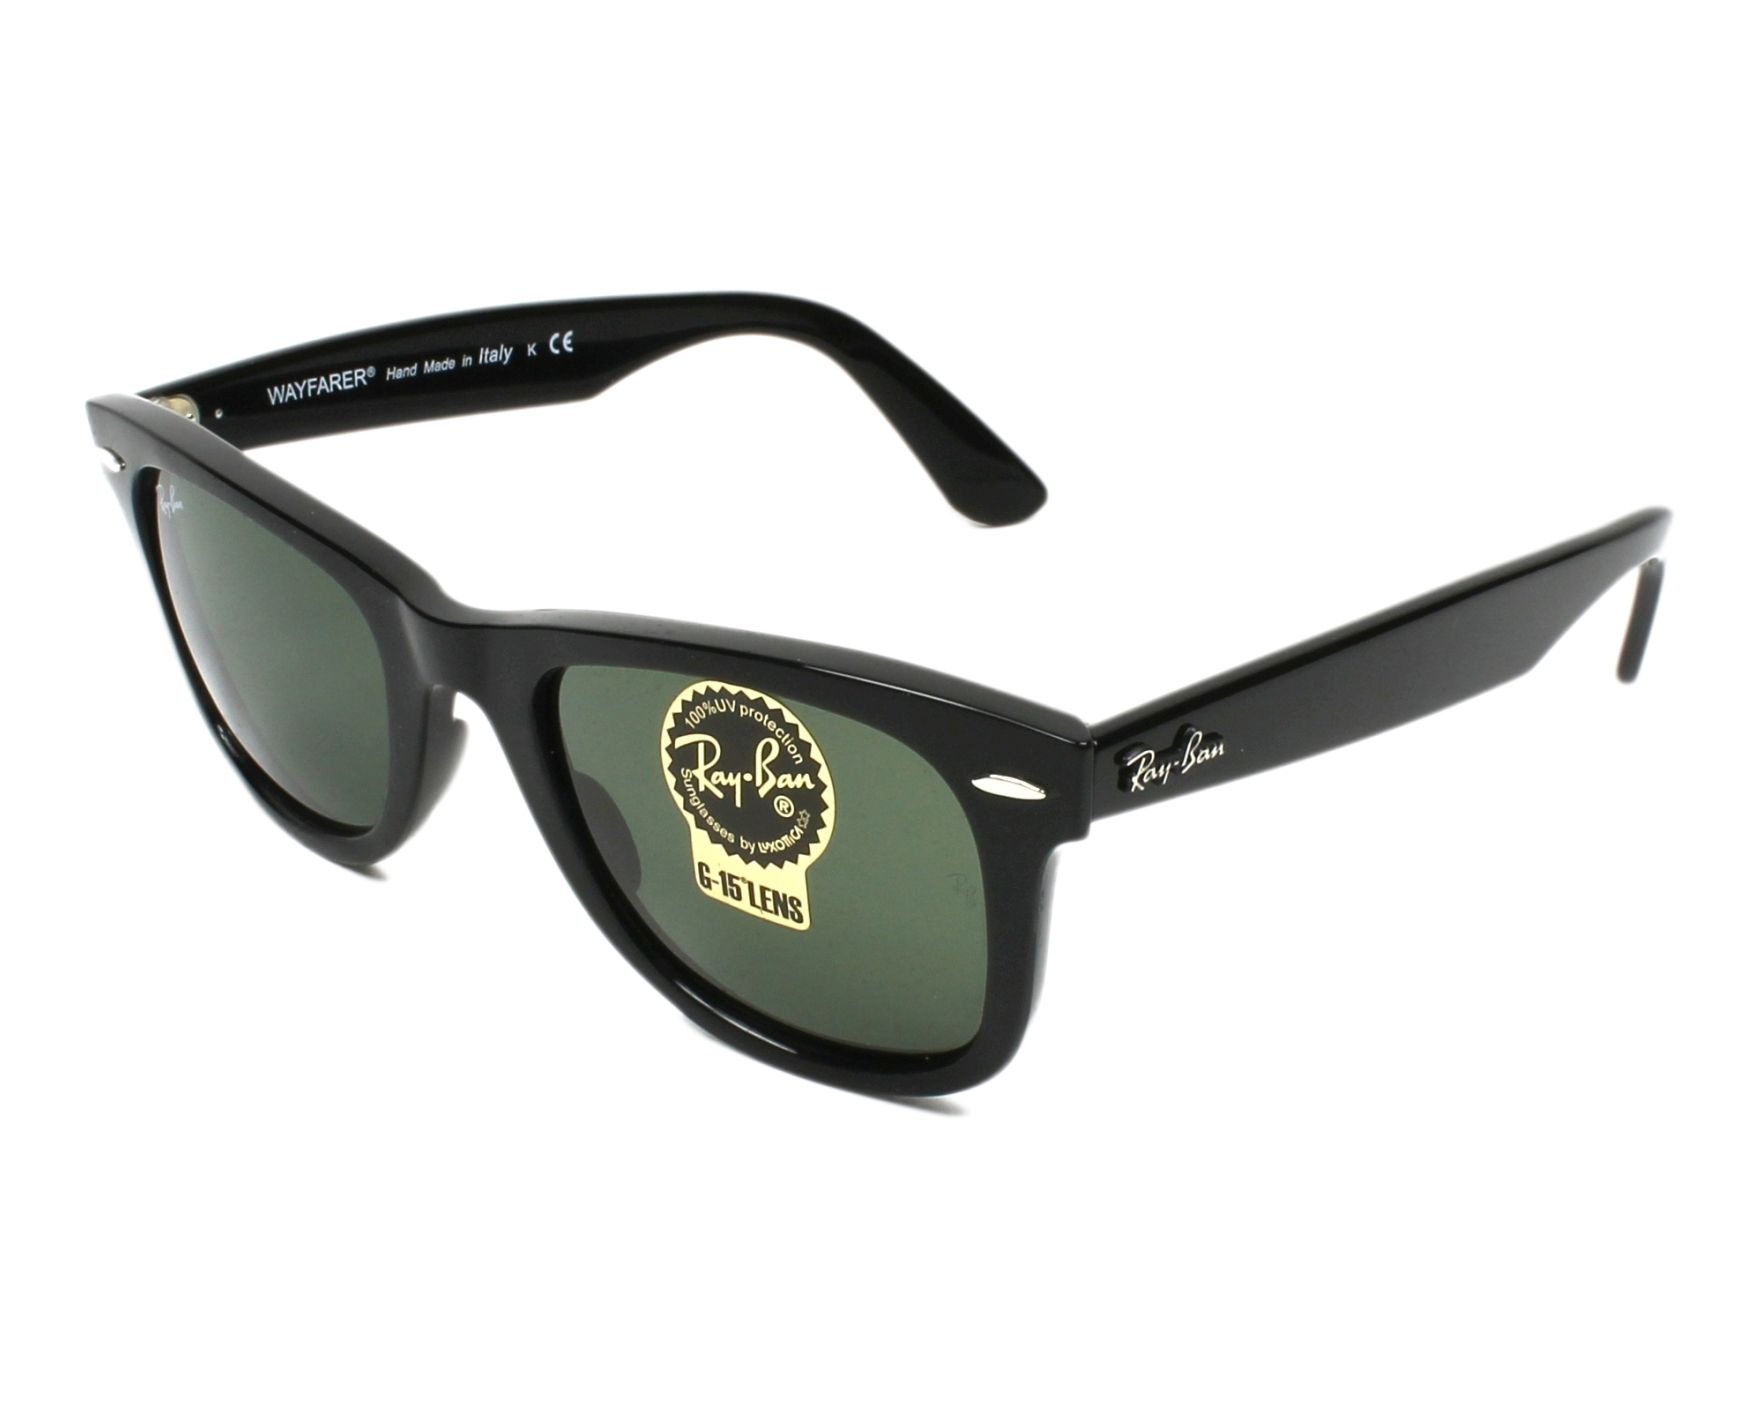 2c4b4ca2a4f ... wayfarer rb4340 601 58 50 sunglasses free shipping shade 497ec 90568  discount sunglasses ray ban rb 4340 601 50 22 black profile view 1a753  3c3d3 ...